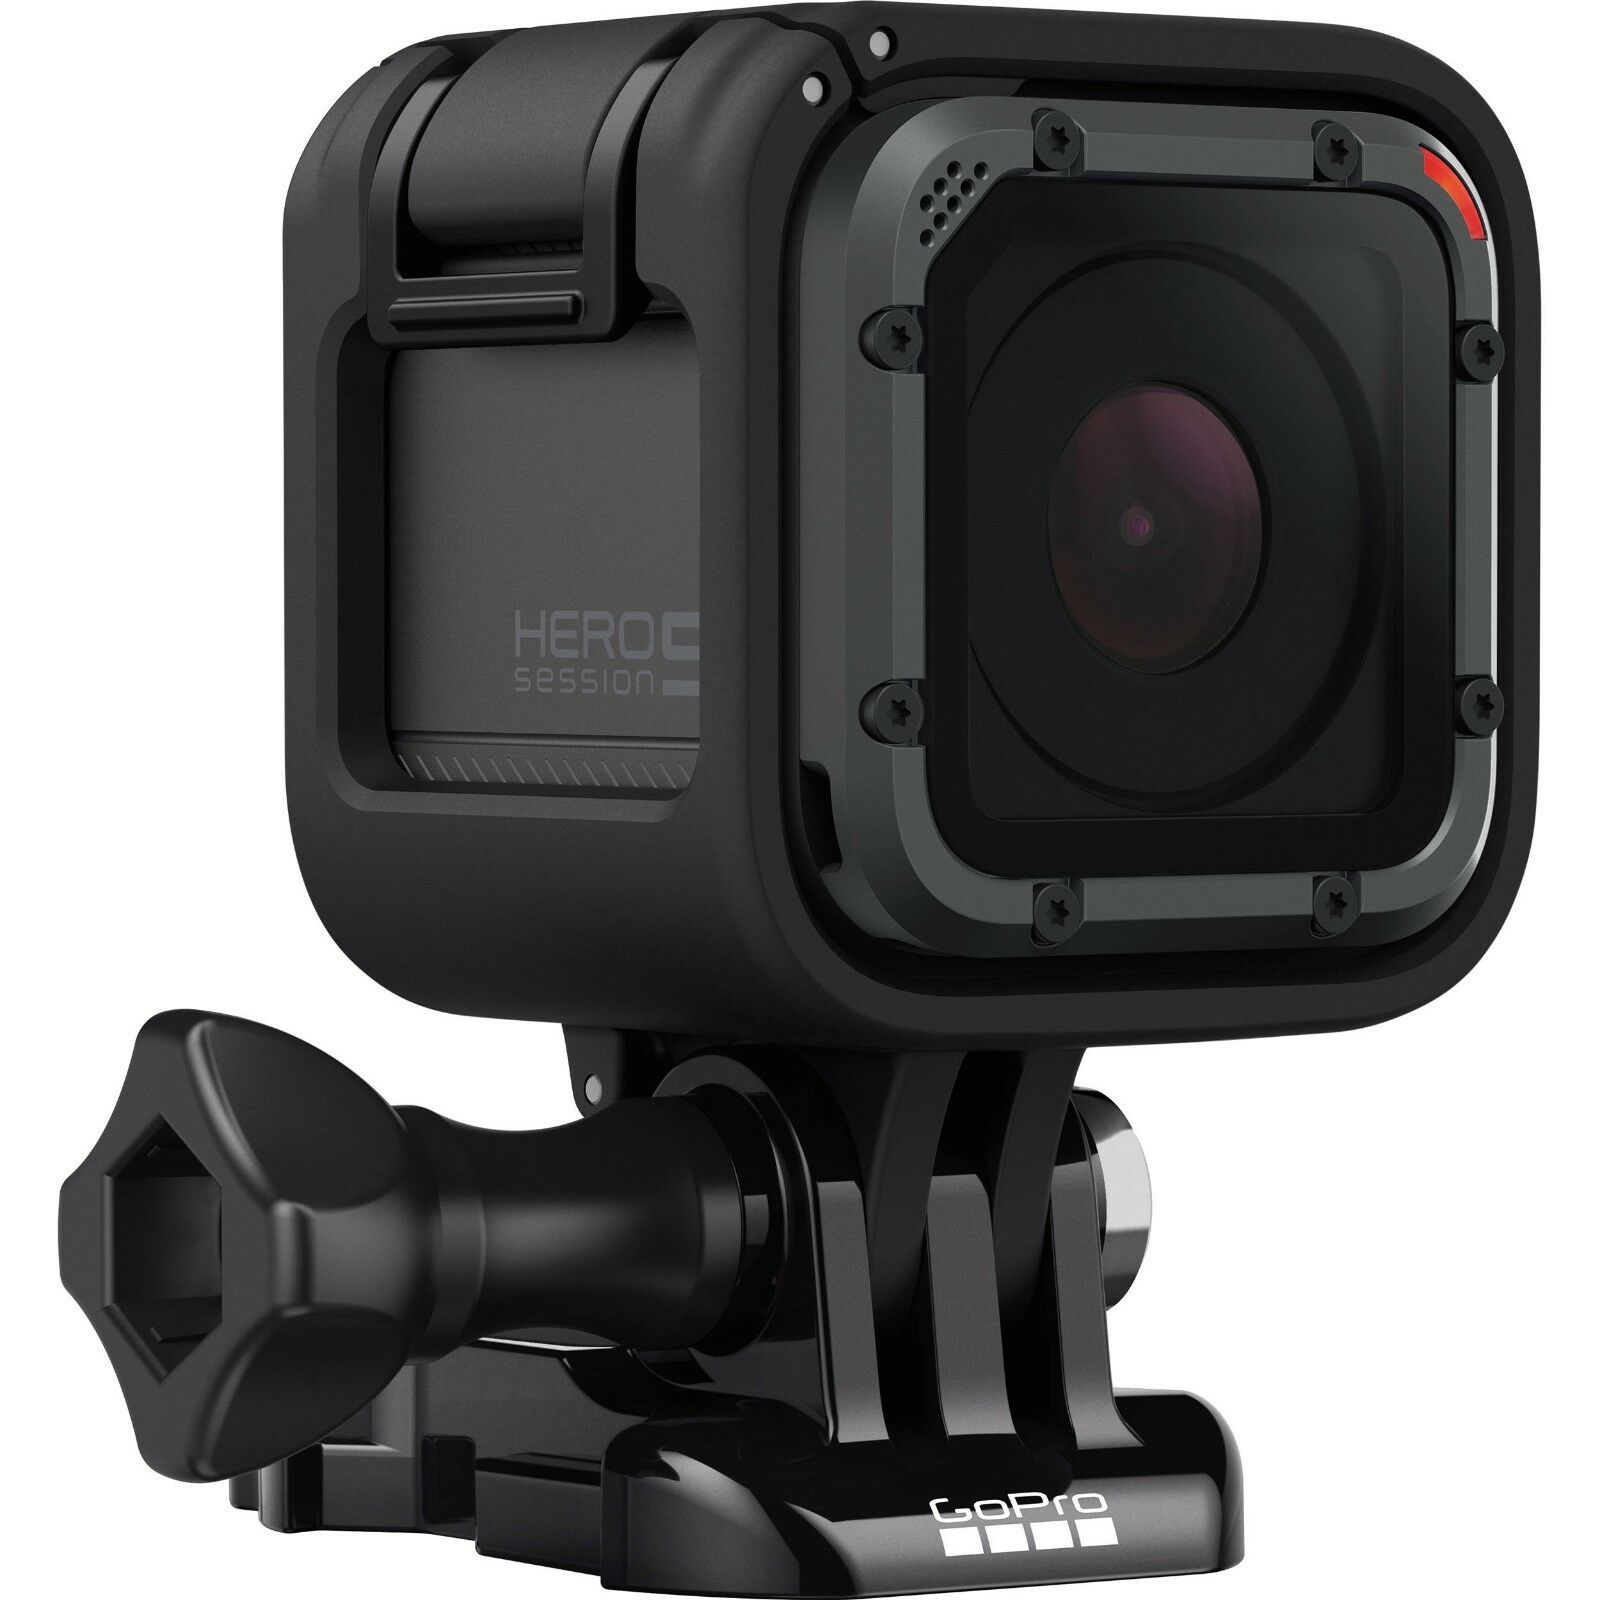 GoPro HERO5 Session HD Action Camera - Certified Refurbished